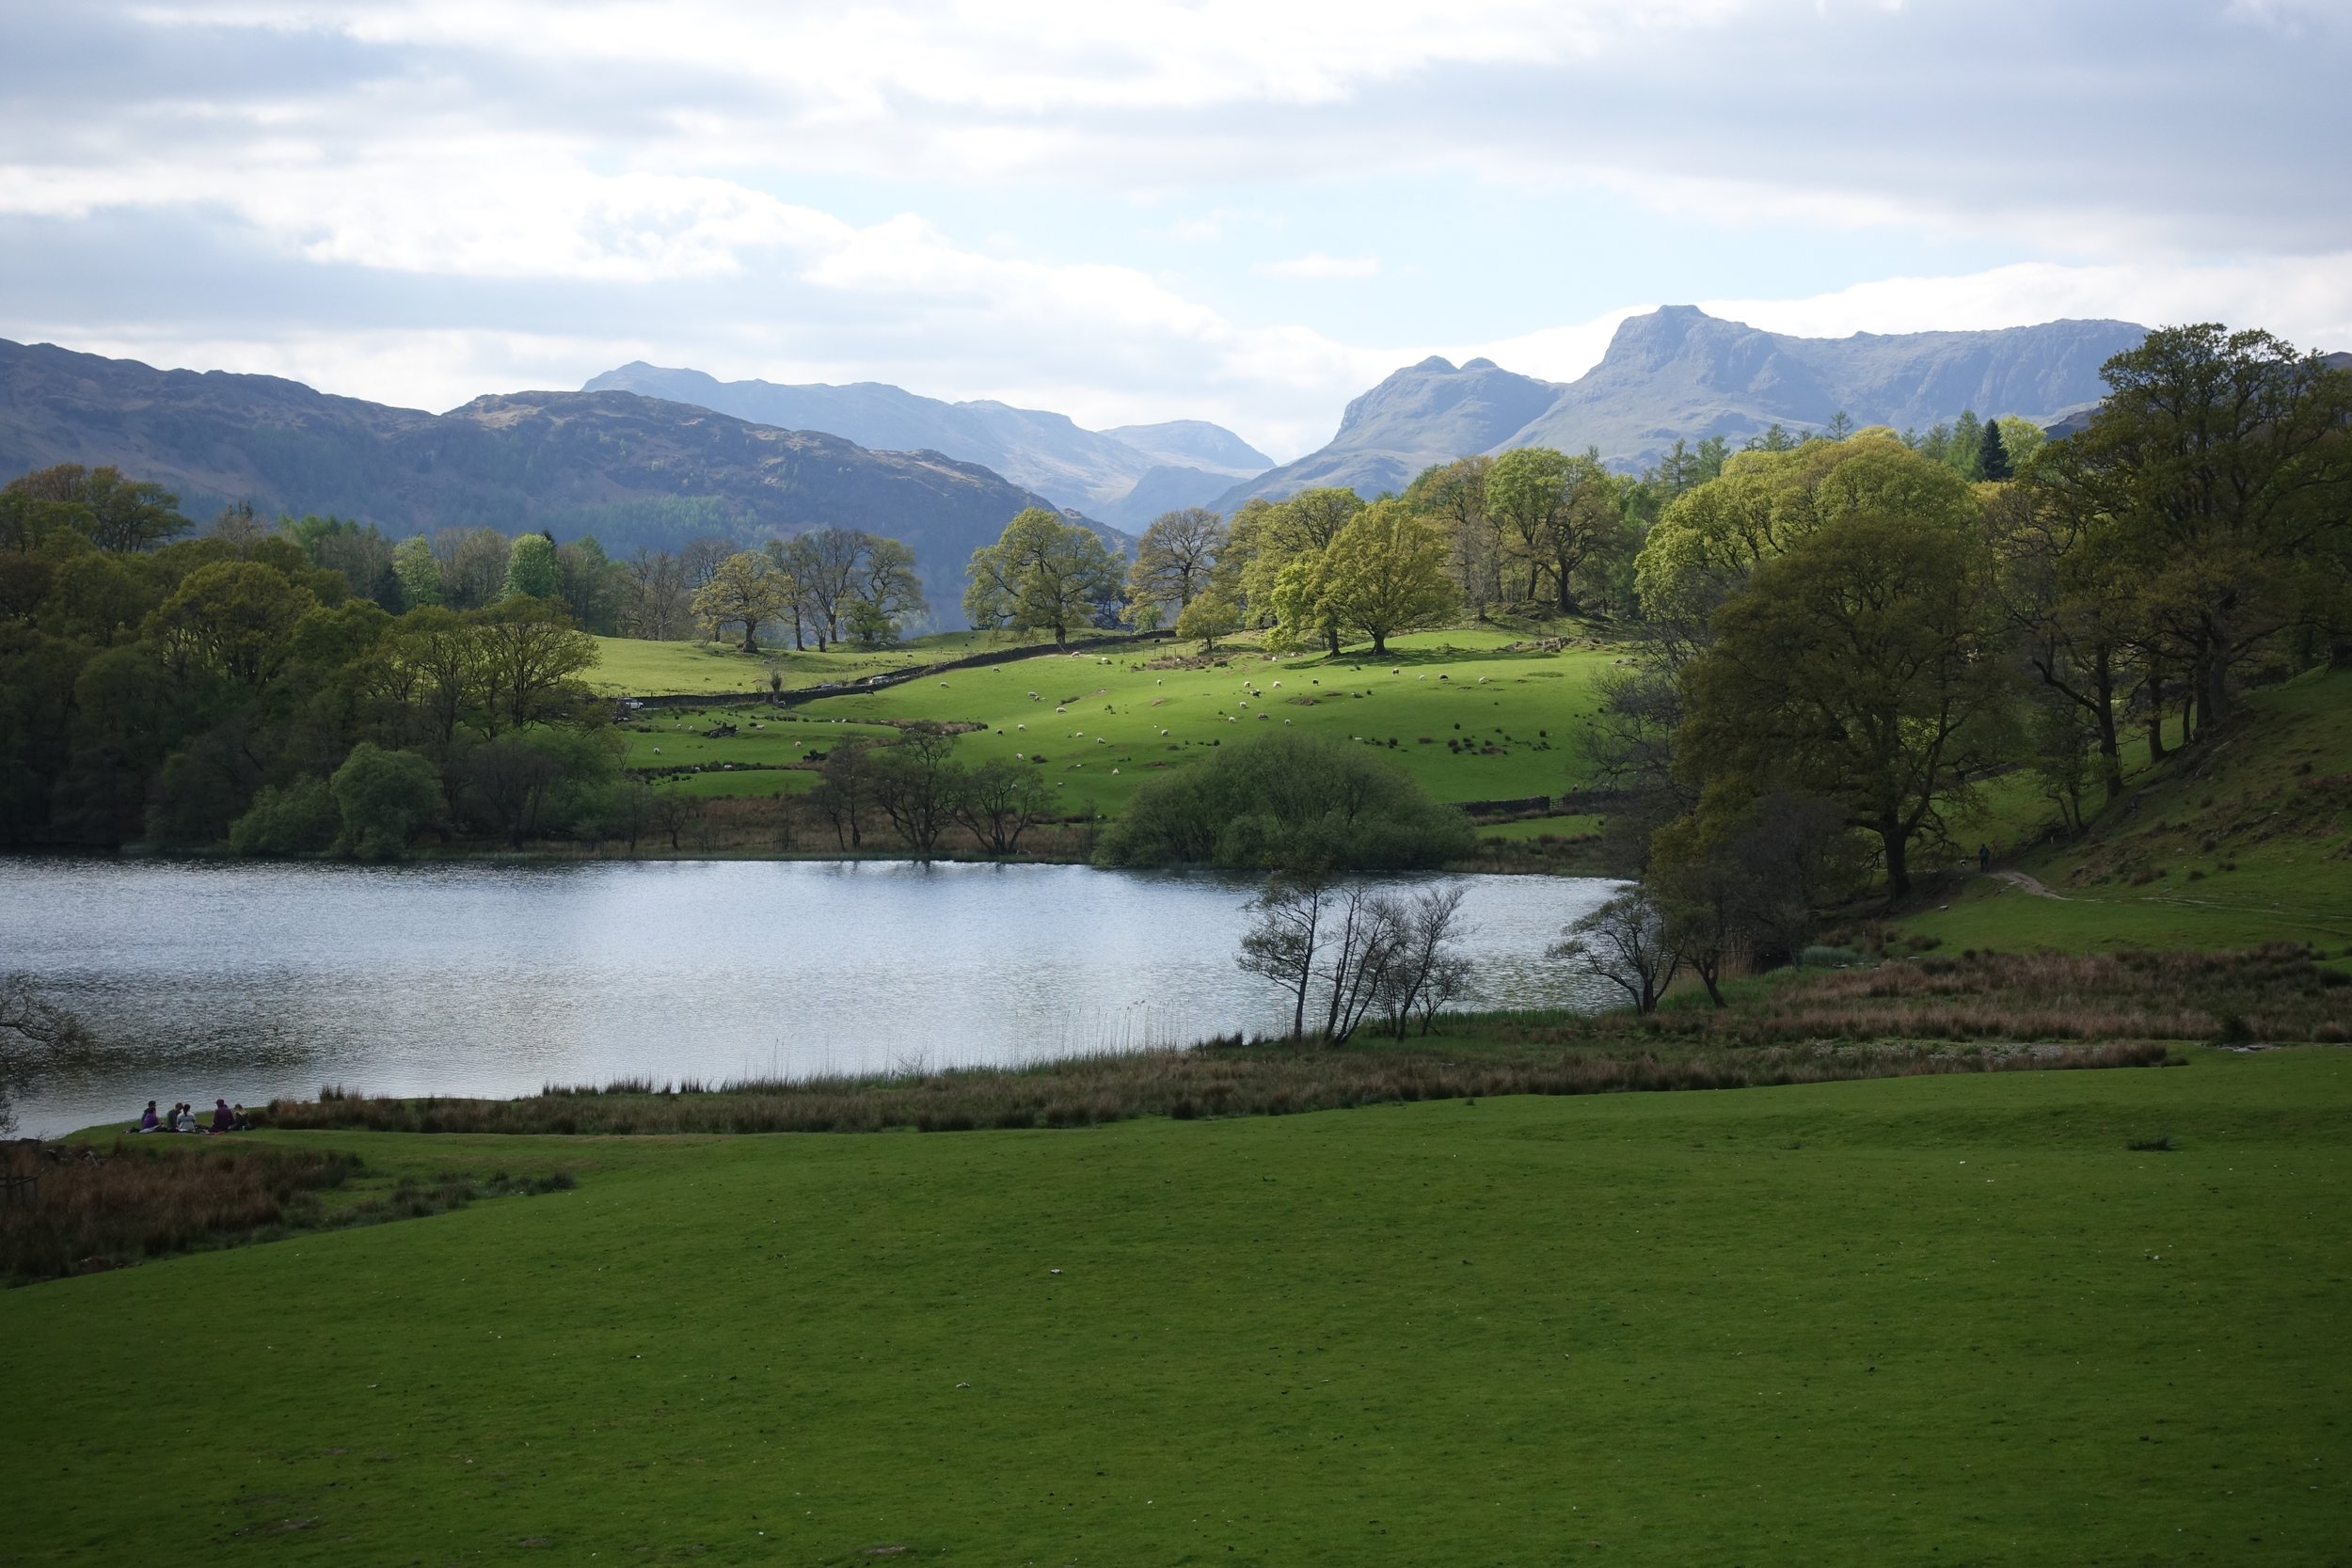 Loughrigg Tarn, which unsurprisingly is just below Loughrigg Fell